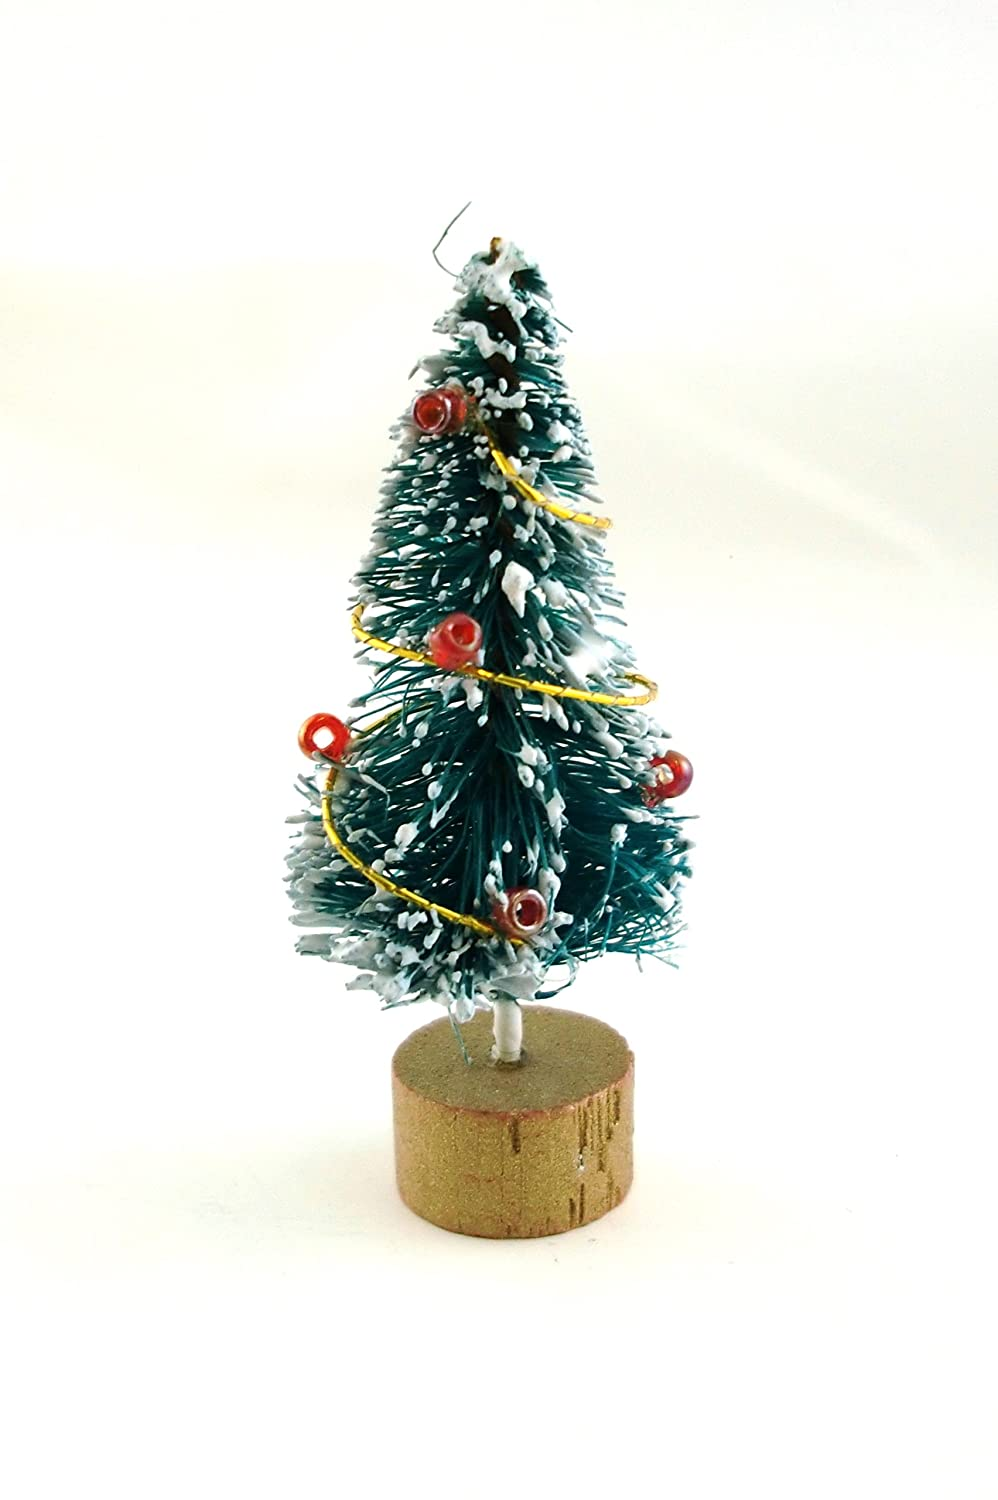 Dolls House Miniature 1:12 Christmas Accessory Decorated Snowy ...